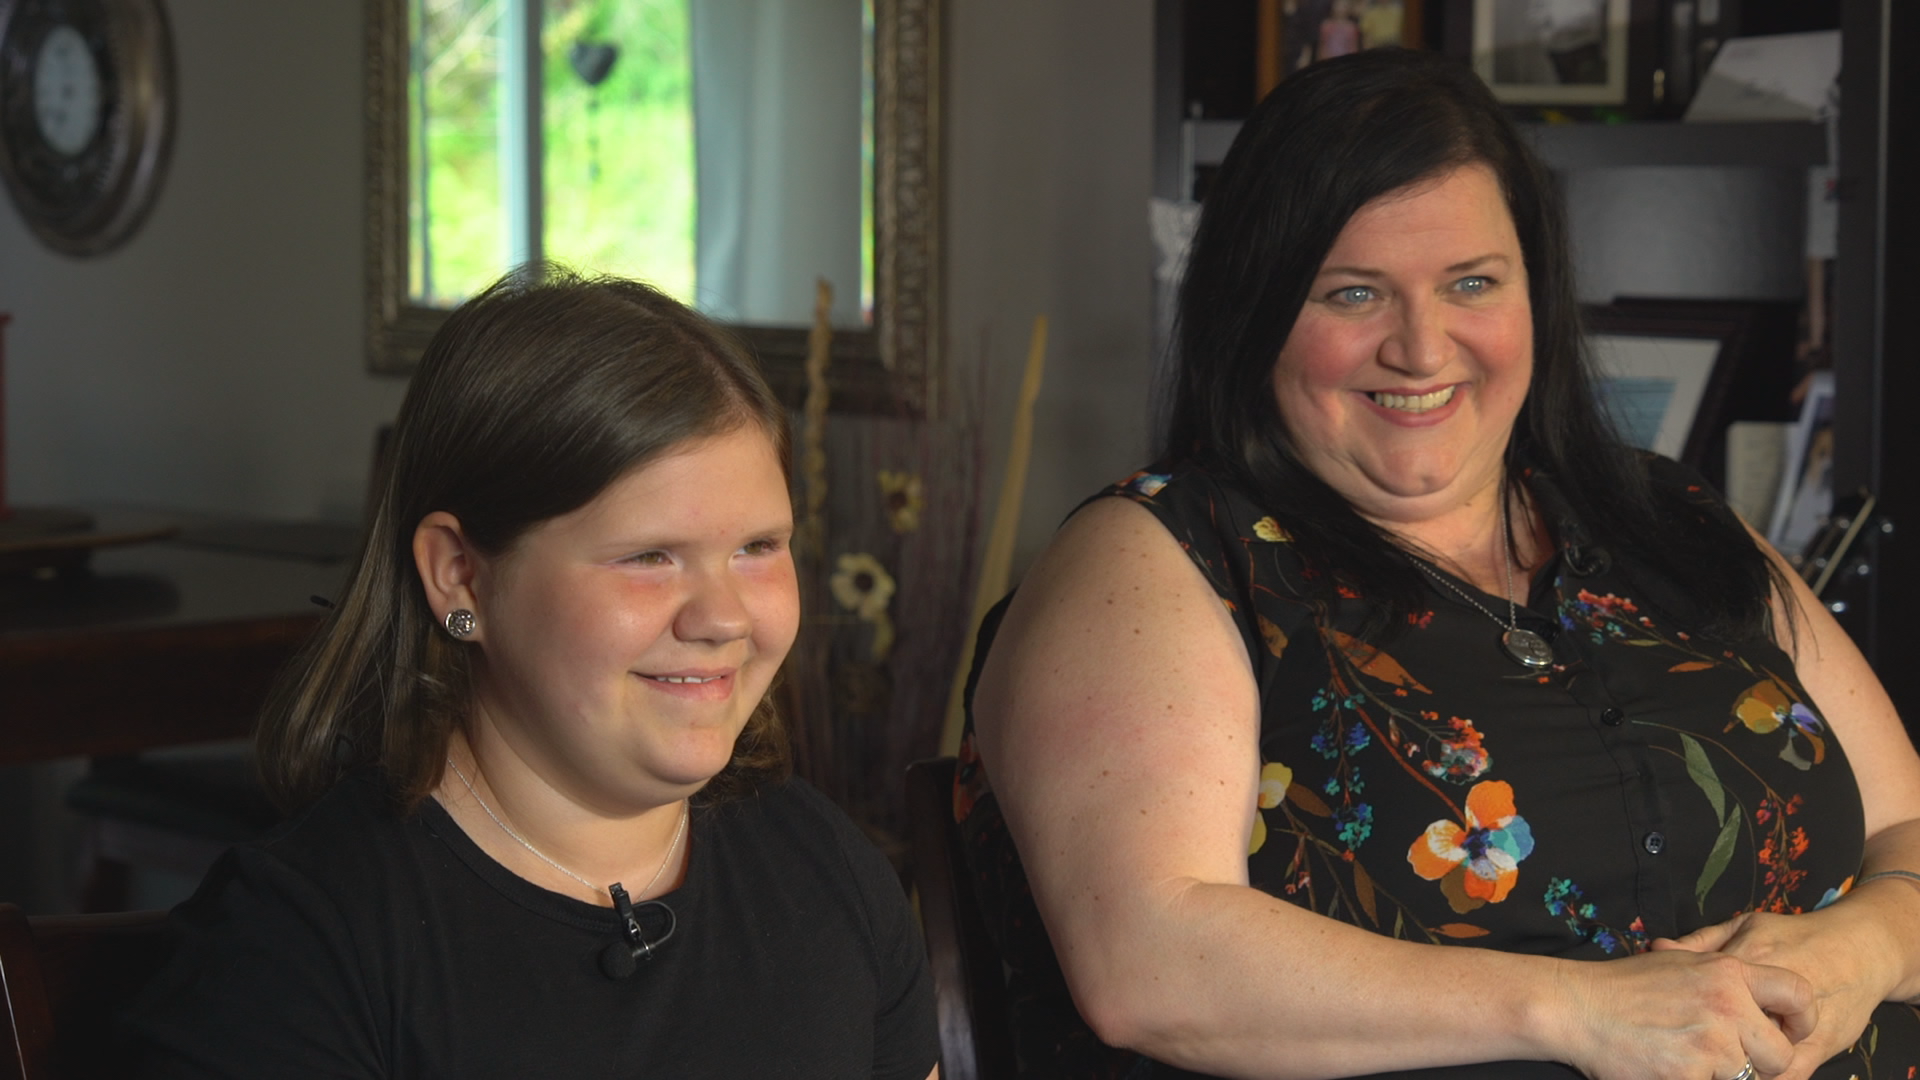 Now, 11-year-old Brygette Park and her mom are relieved that she's a happy and healthy girl. (Gary Quigley/CBC)